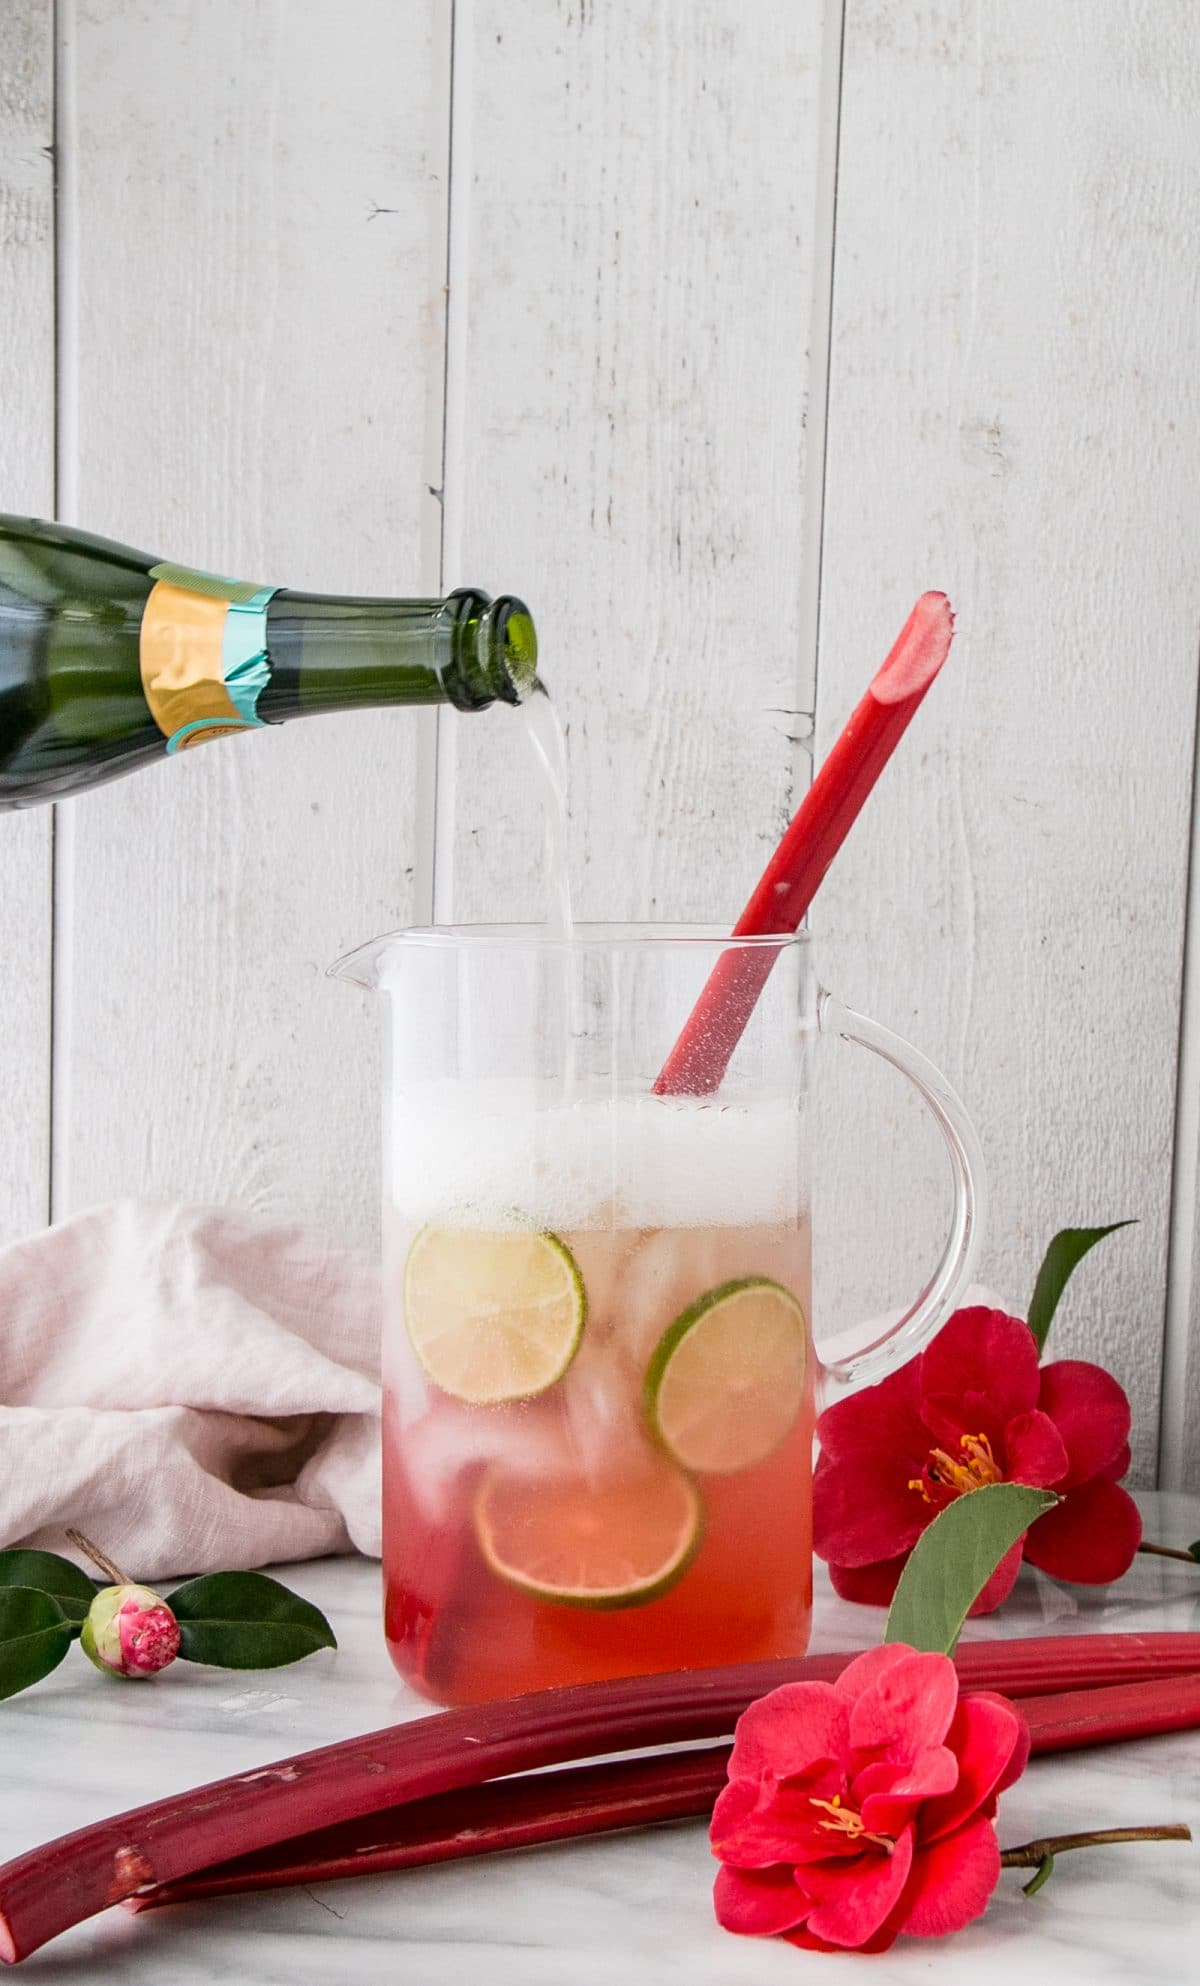 A champagne bottle pouring into a pitcher, making Sparkling Rhubarb Margarita.